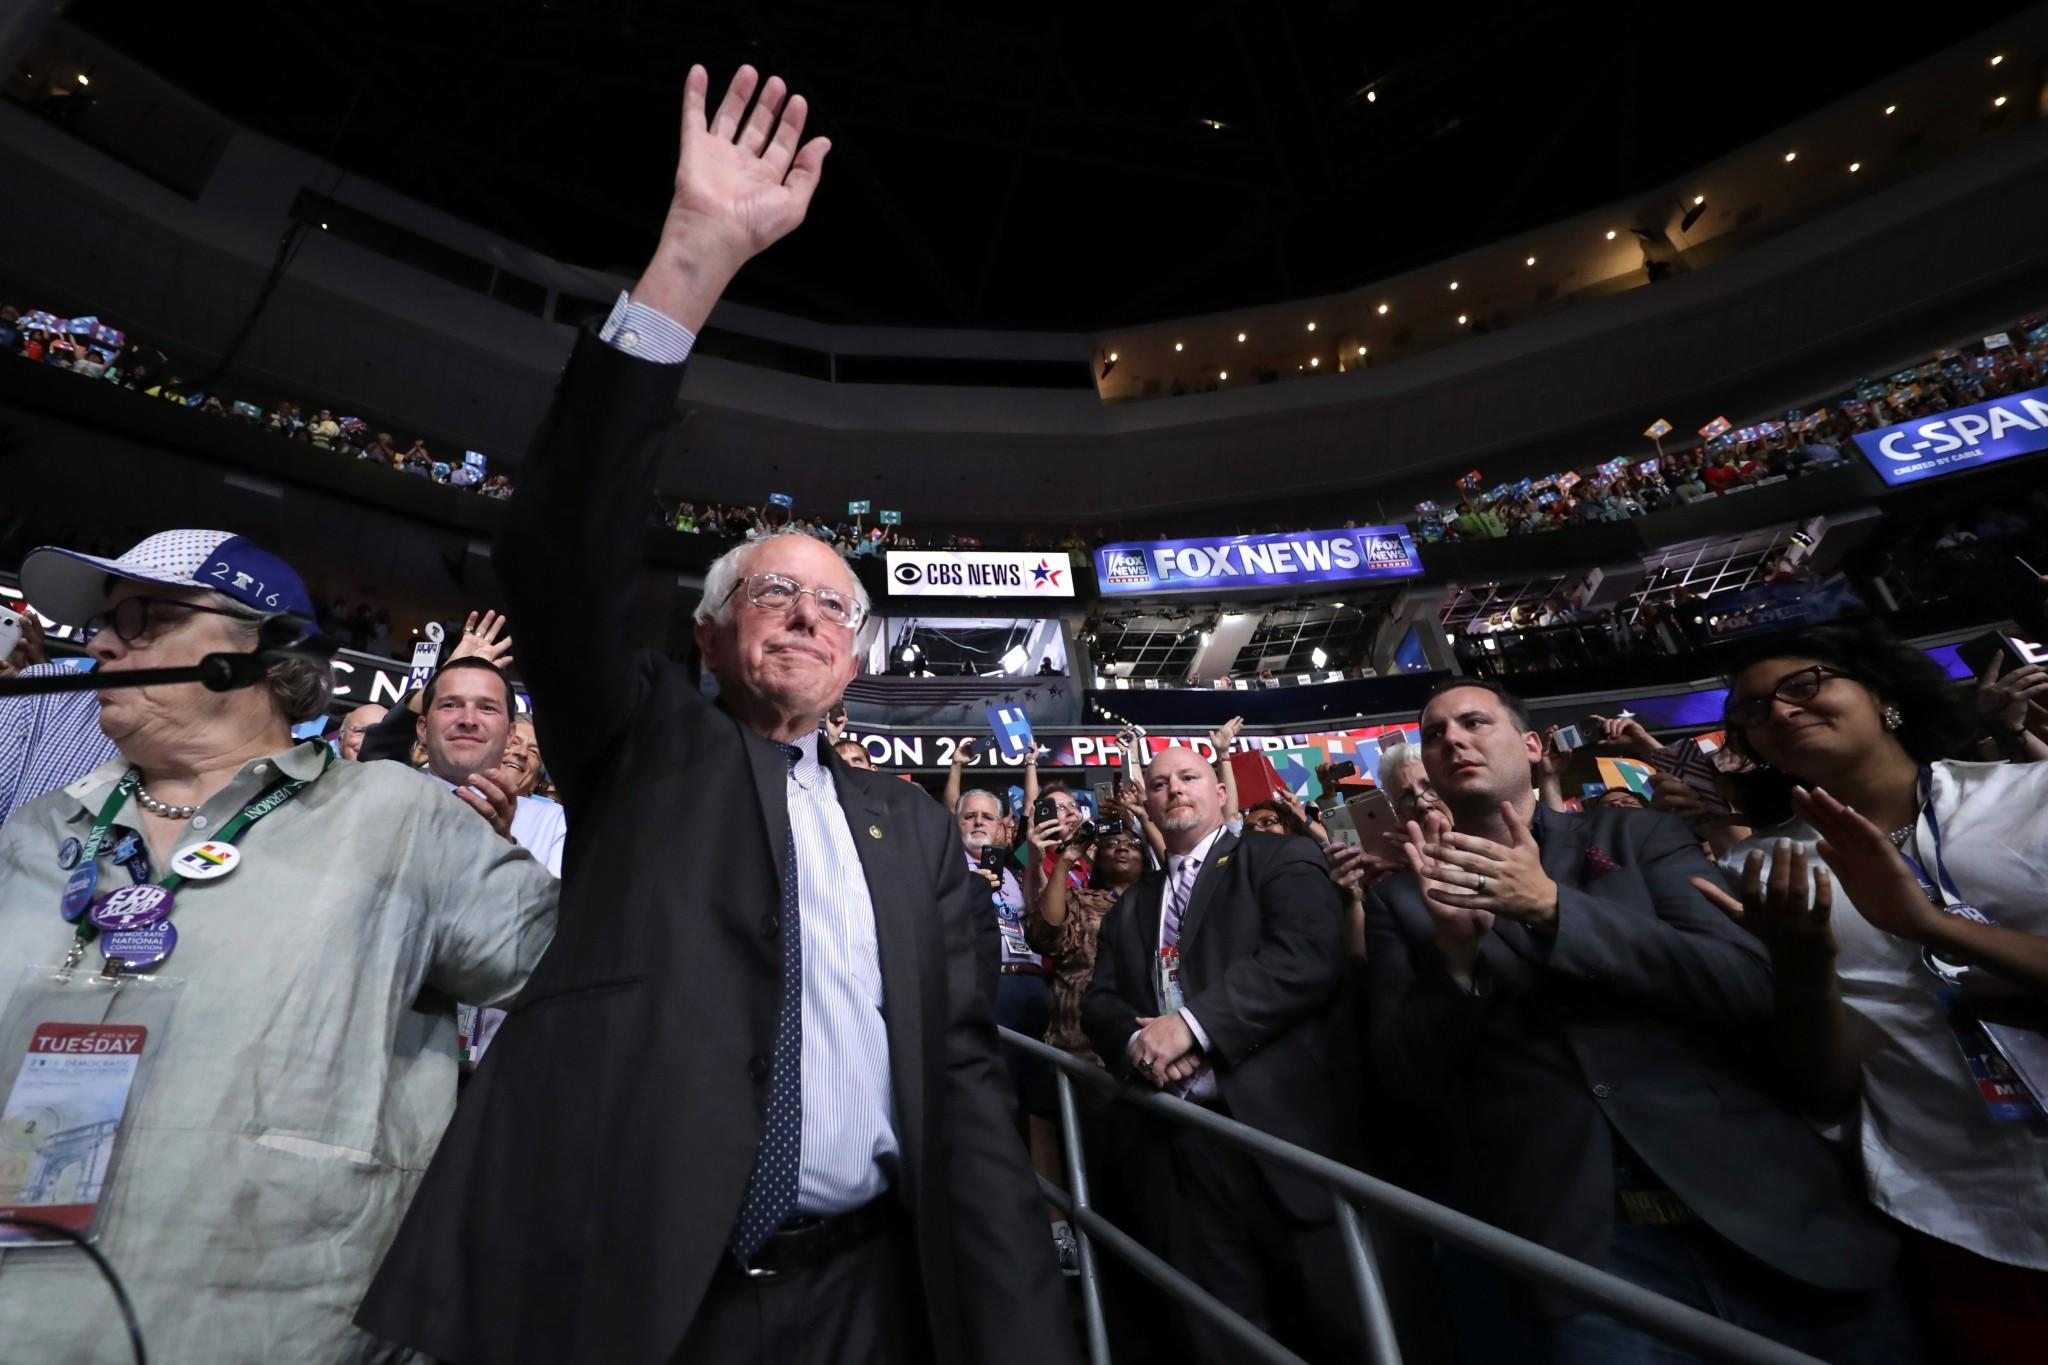 Sen. Bernie Sanders waves to the crowd on Tuesday at the DNC in Philadelphia. (Photo: Chip Somodevilla/Getty Images)